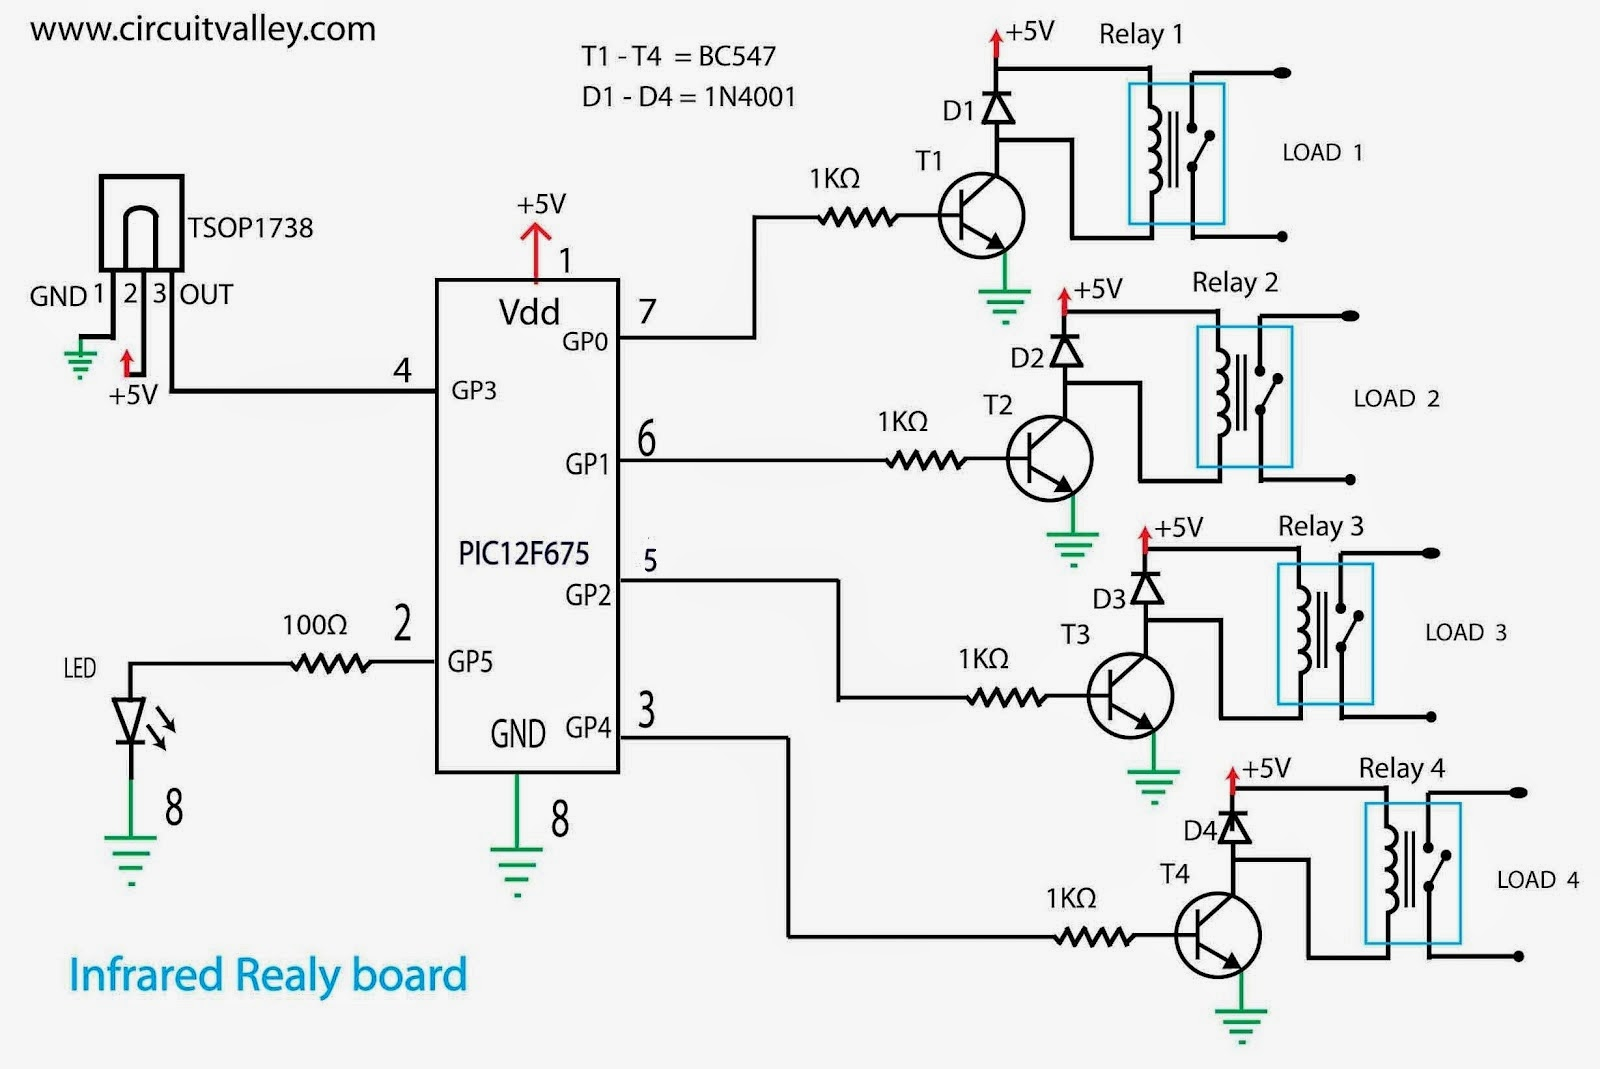 Arduino Ir Relay Wiring Block Diagram Explanation Embedded Engineering Infrared Remote Control Board With Pic 12f675 Microcontroller